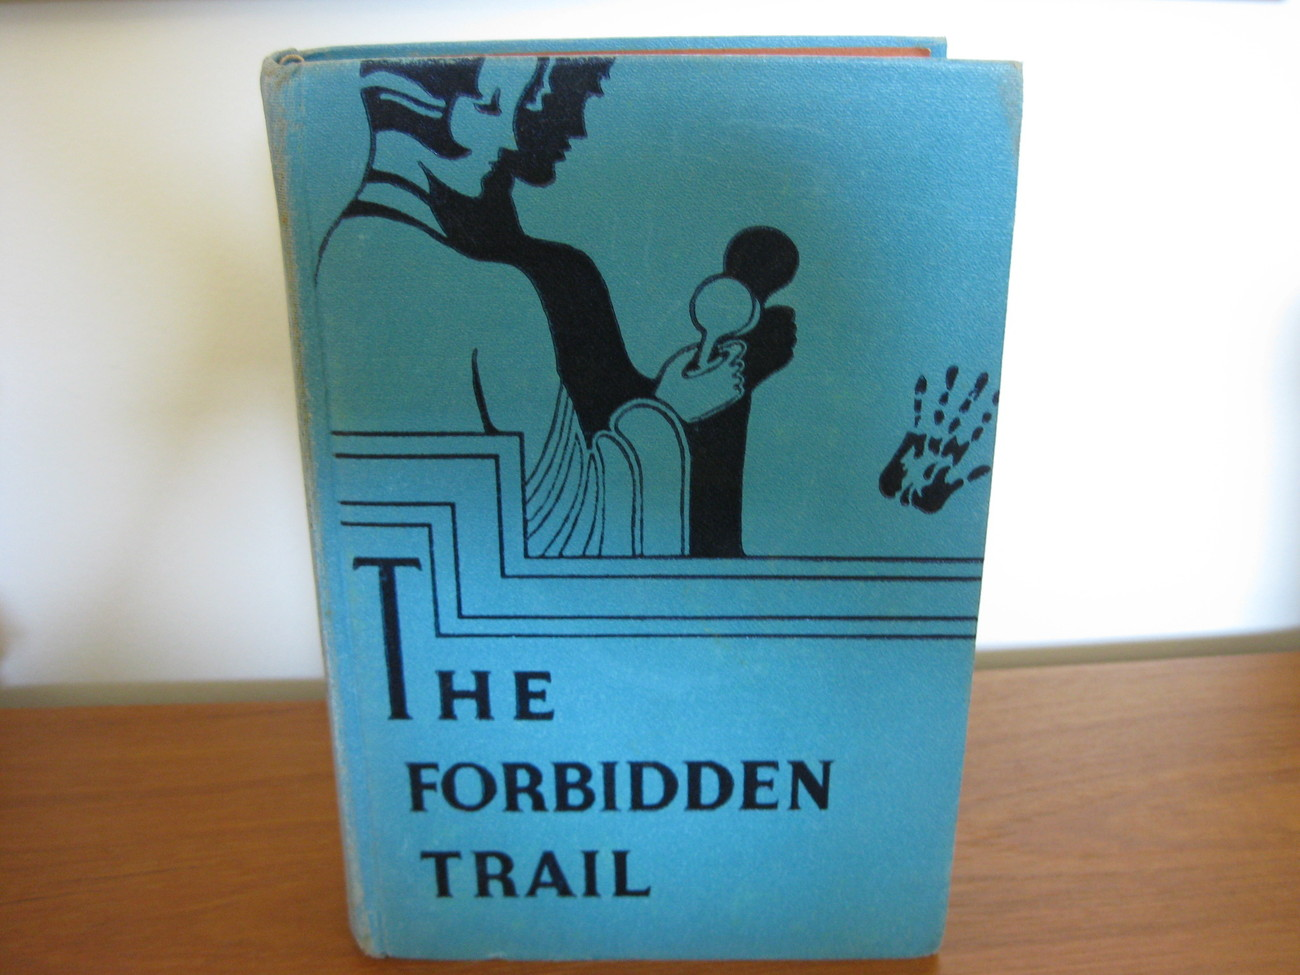 THE FORBIDDEN TRAIL #2 of 9 * MELODY LANE * LILIAN GARIS